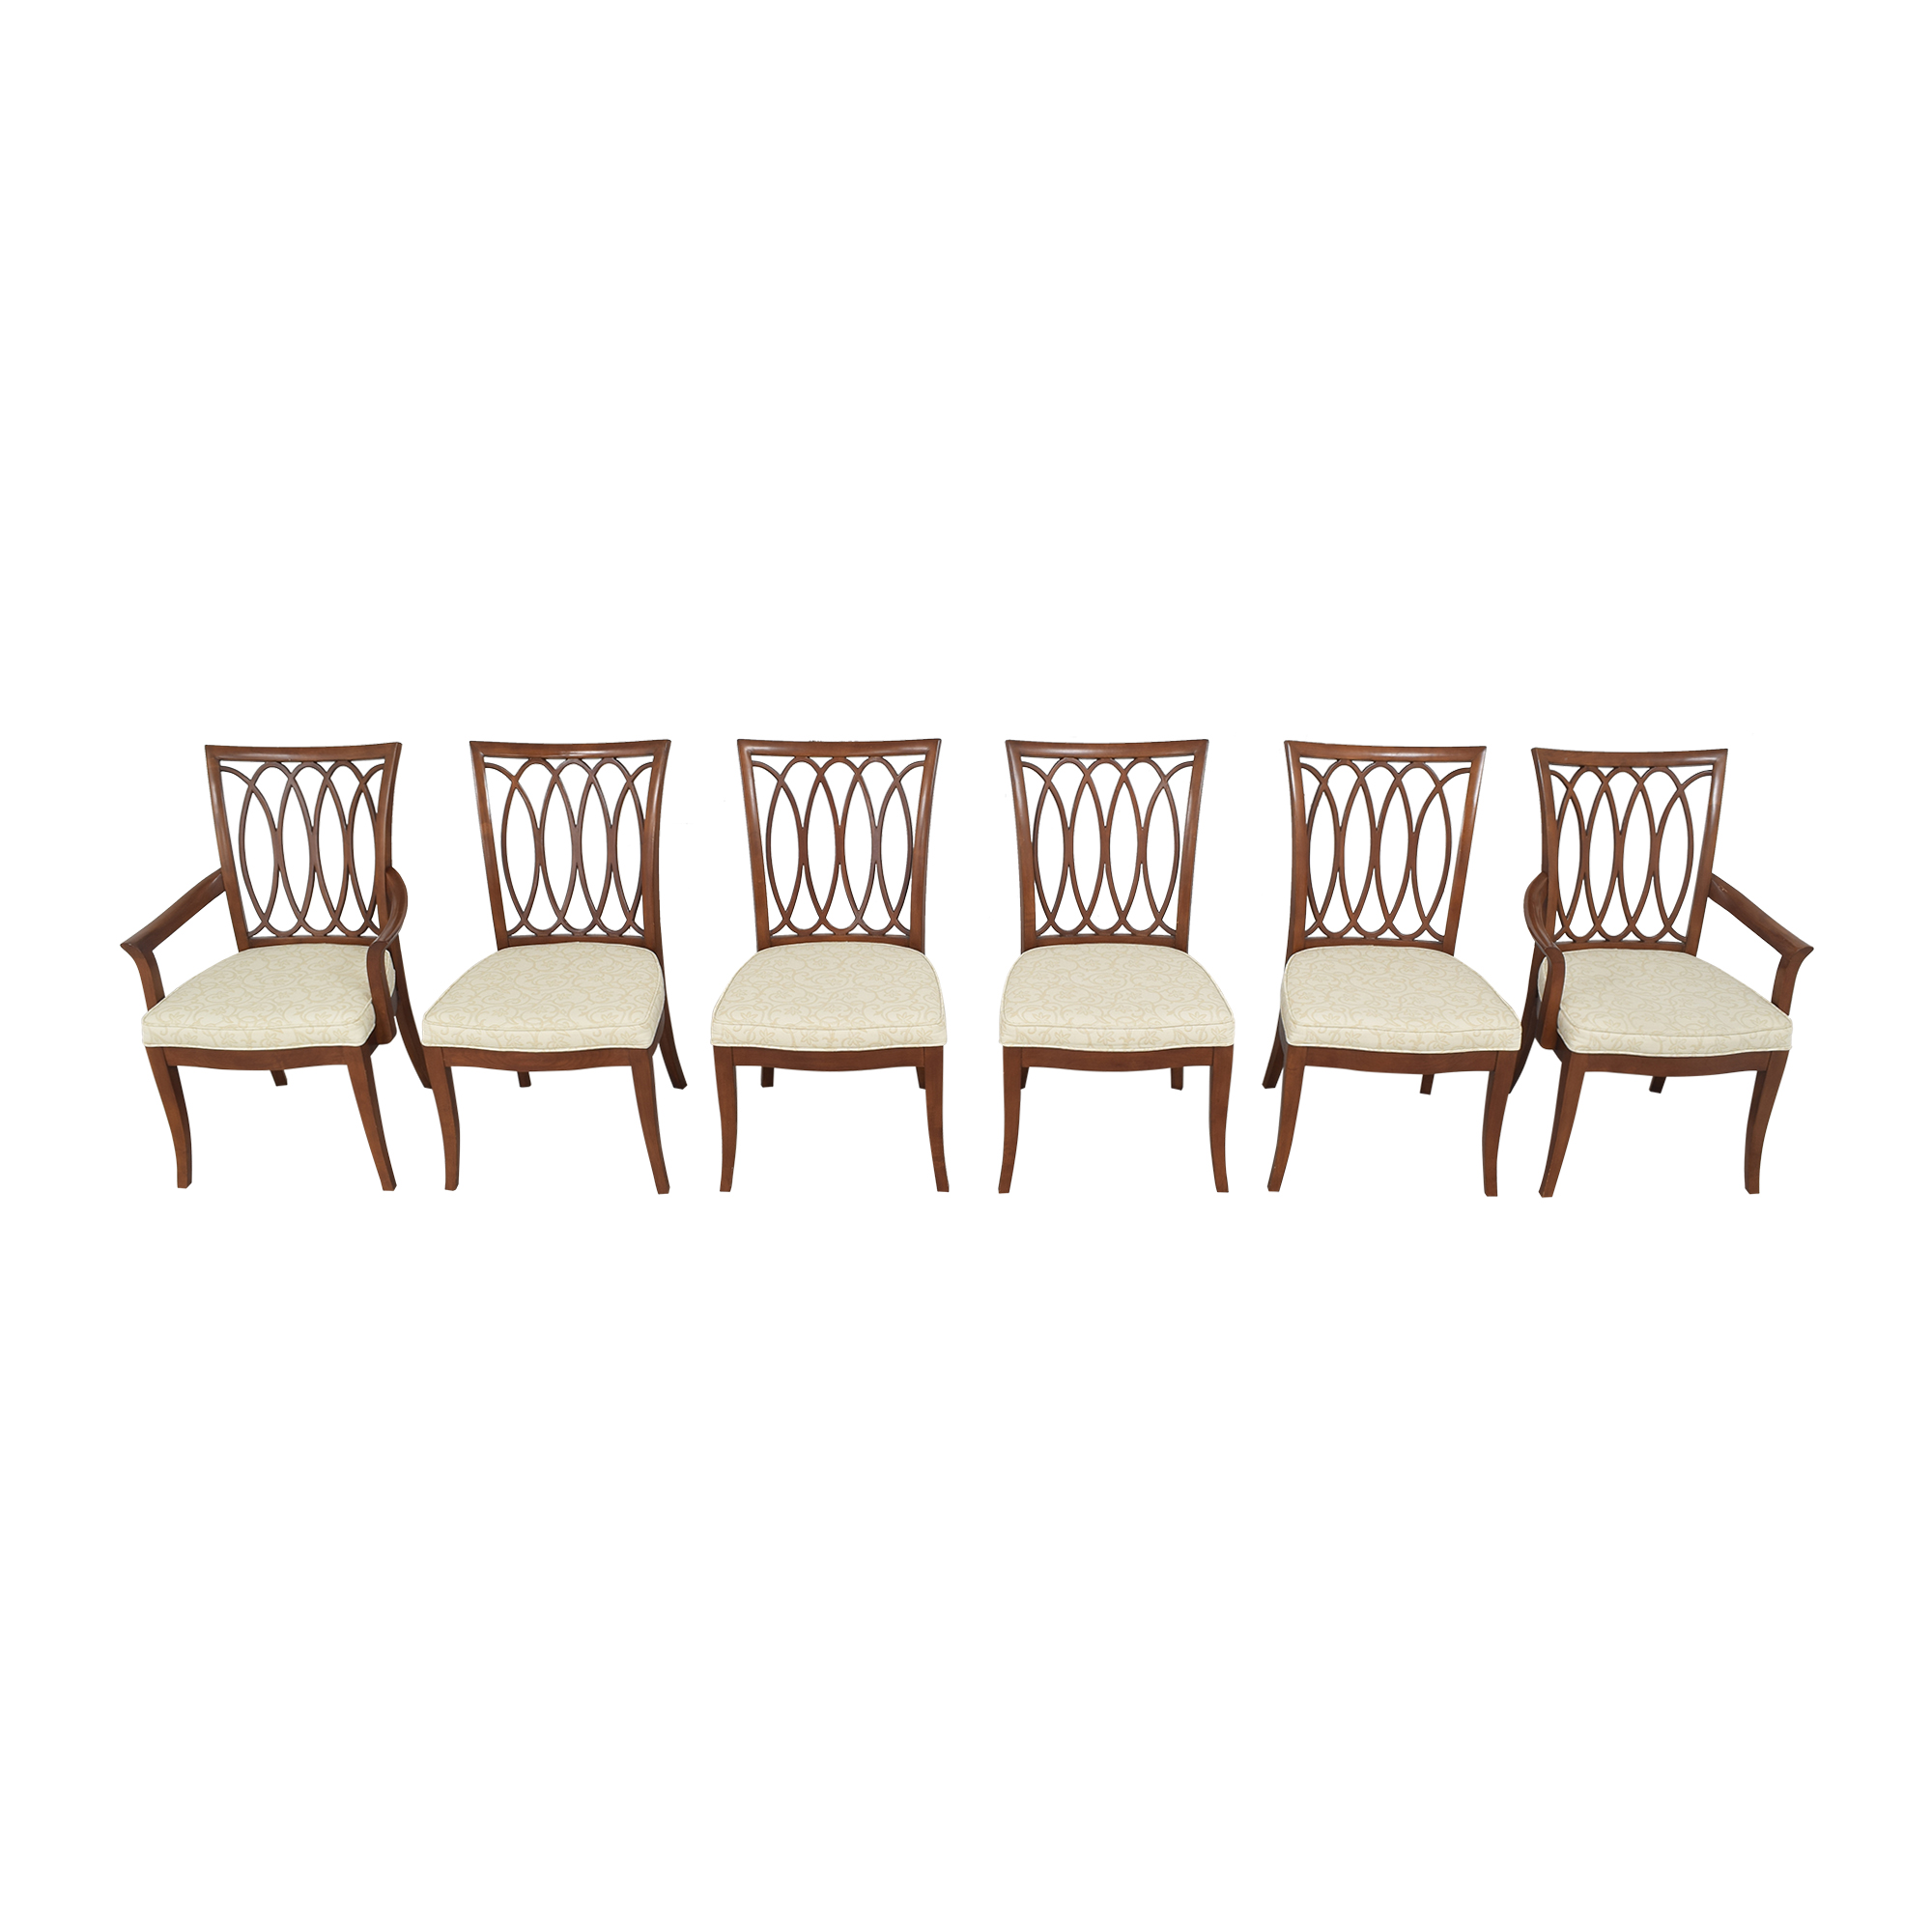 Stanley Furniture Stanley Furniture Hudson Street Dining Chairs for sale